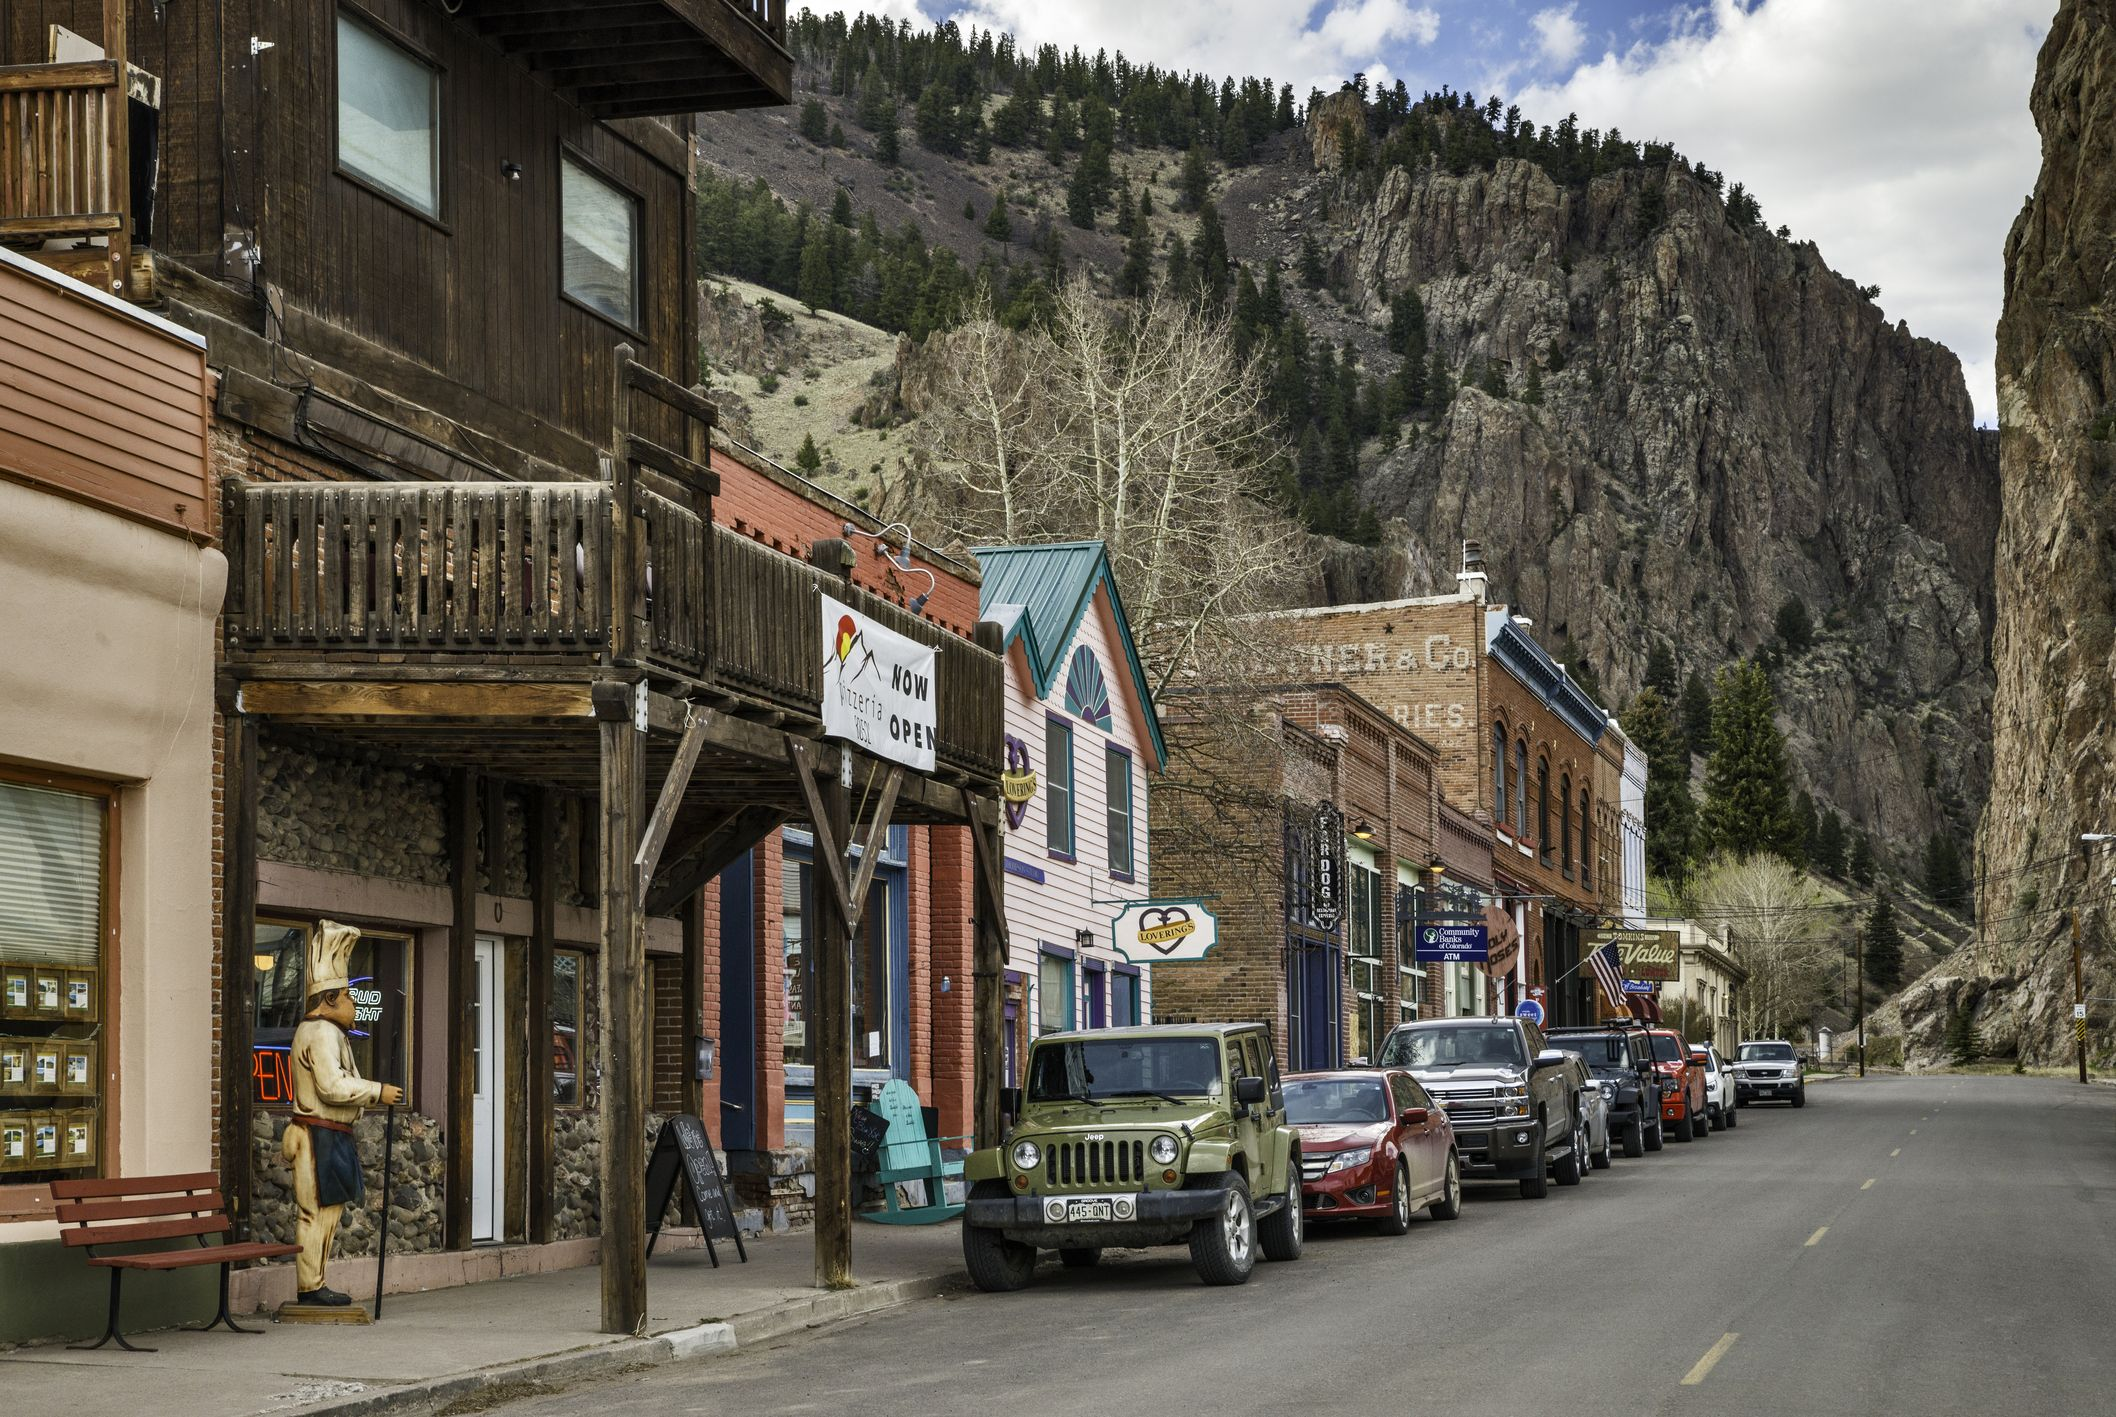 15 Best Small Towns In Colorado Affordable Small Mountain Towns To Visit And Live In Co,What Color Matches Green Walls